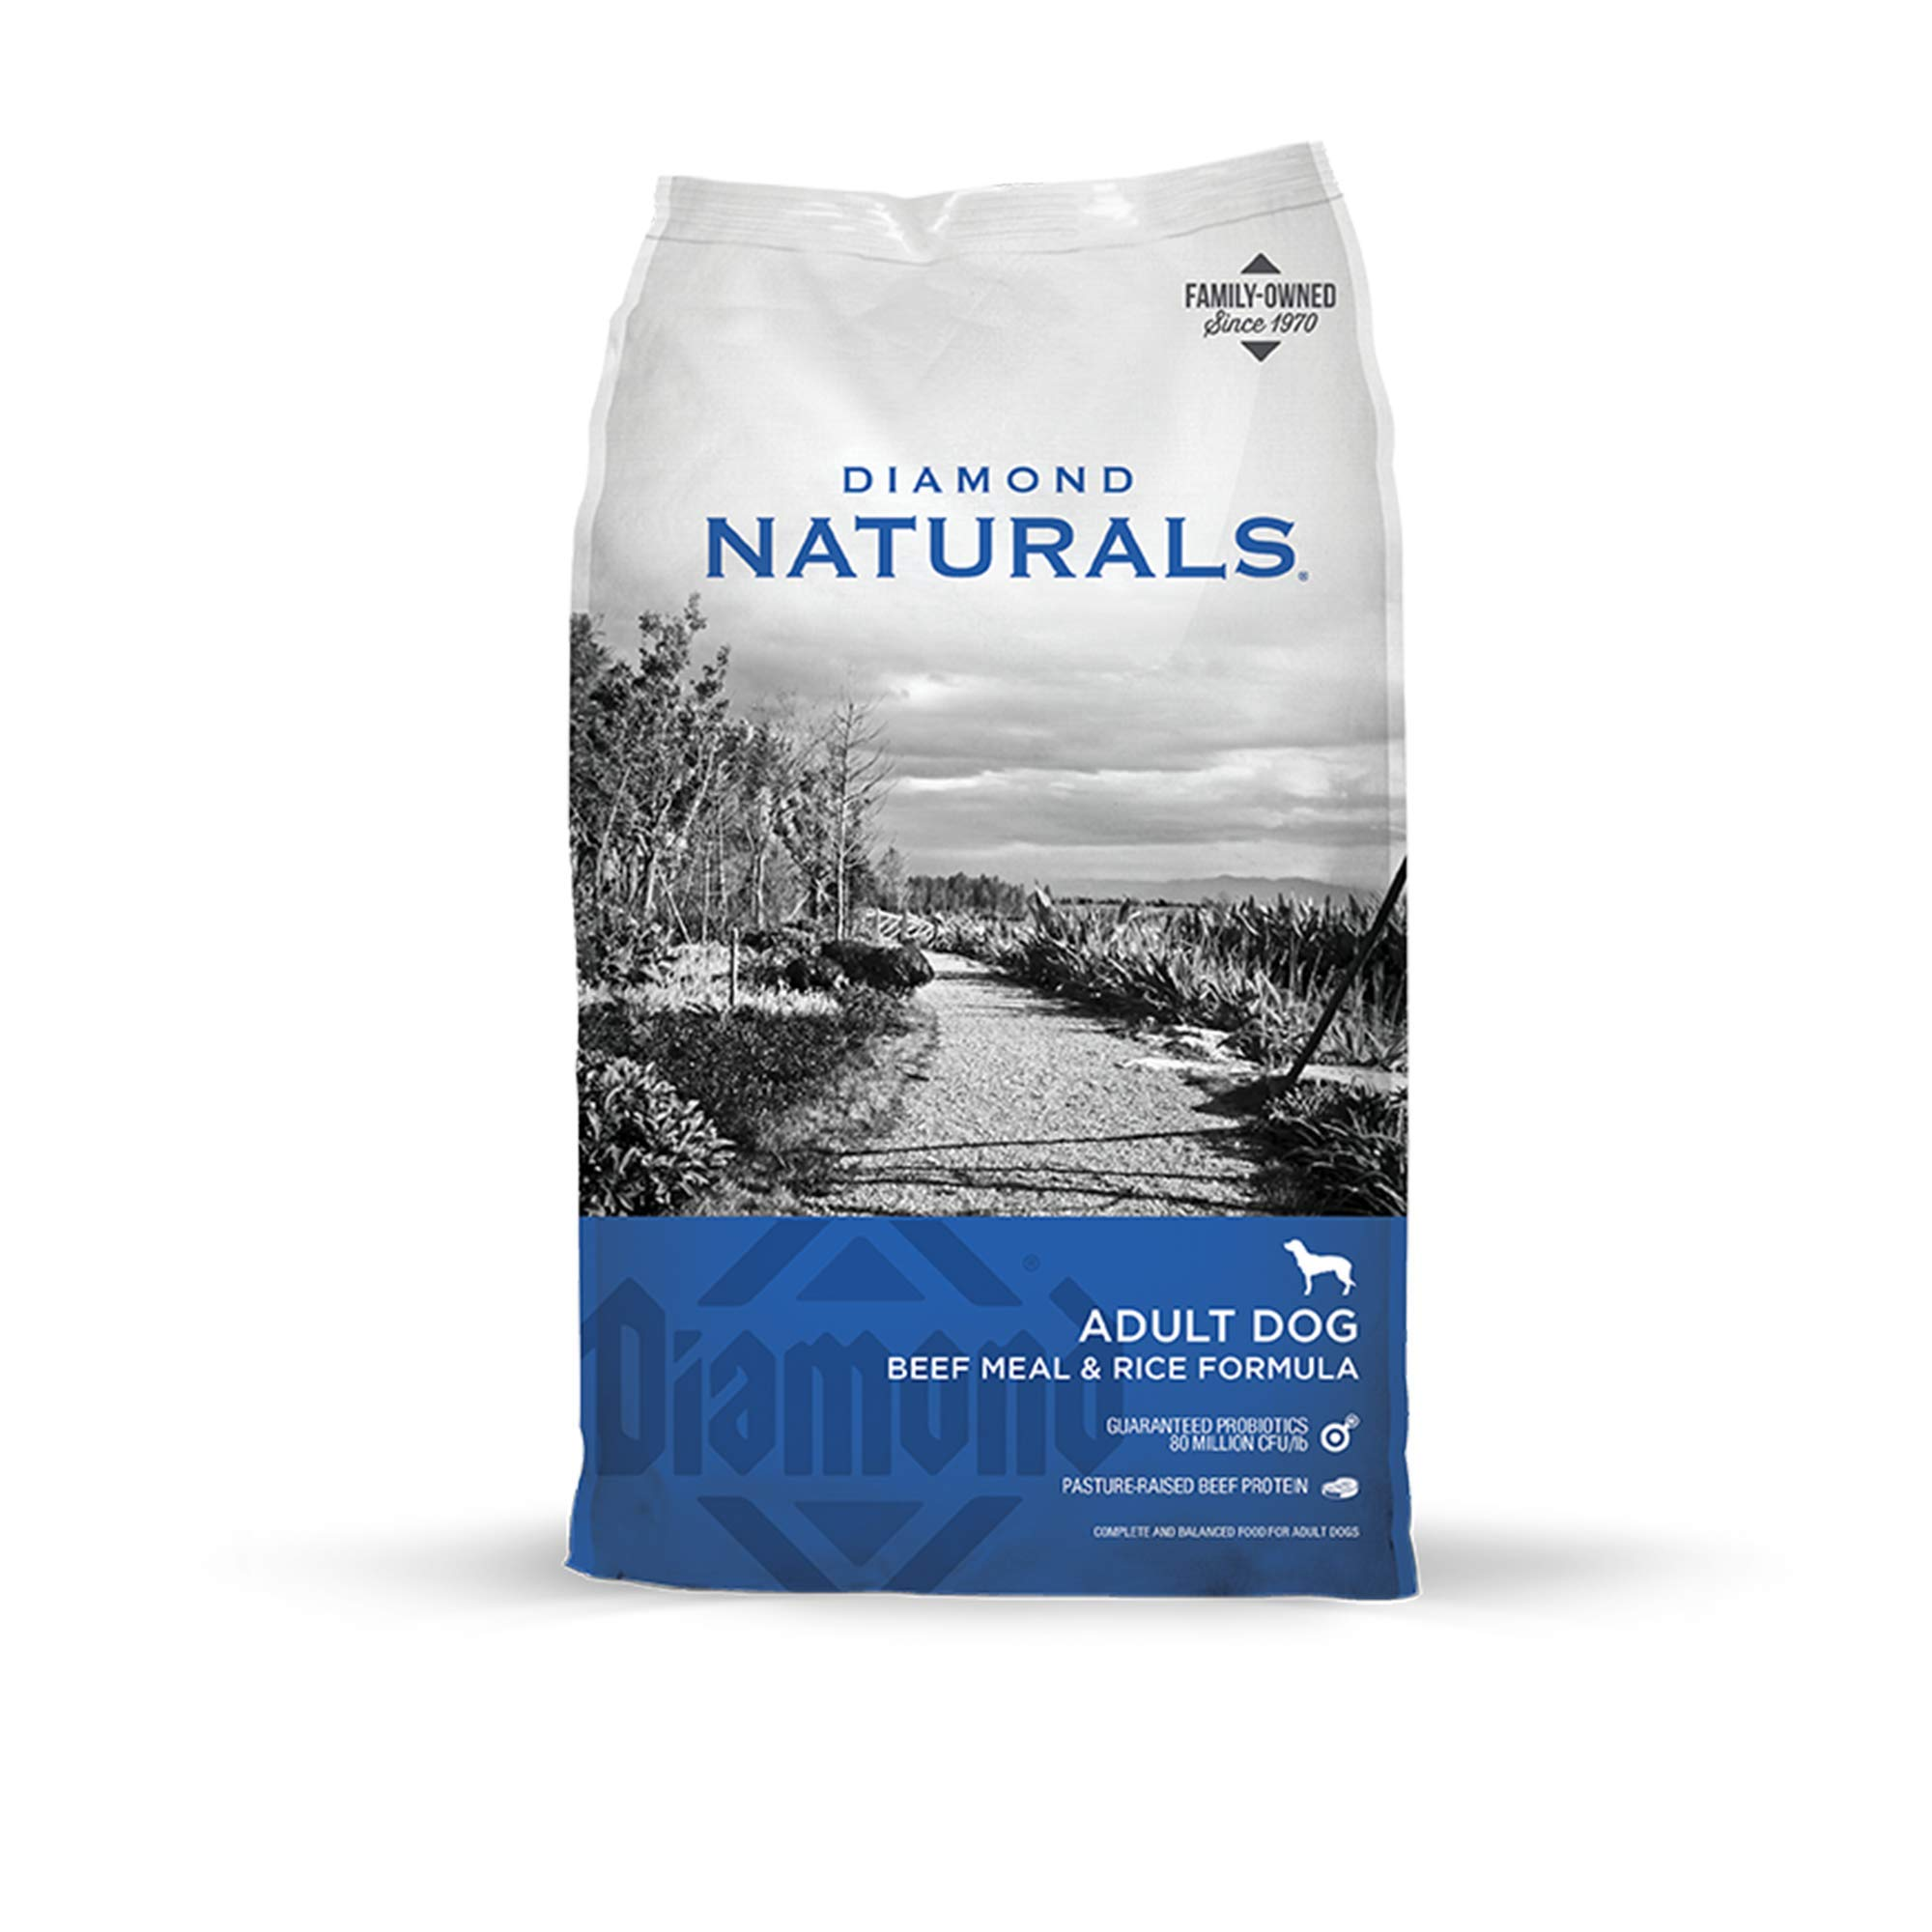 Diamond Naturals Adult Real Meat Recipe Premium Dry Dog Food With Grain and Real Pasture Raised Beef Protein 40Lb by DIAMOND NATURALS